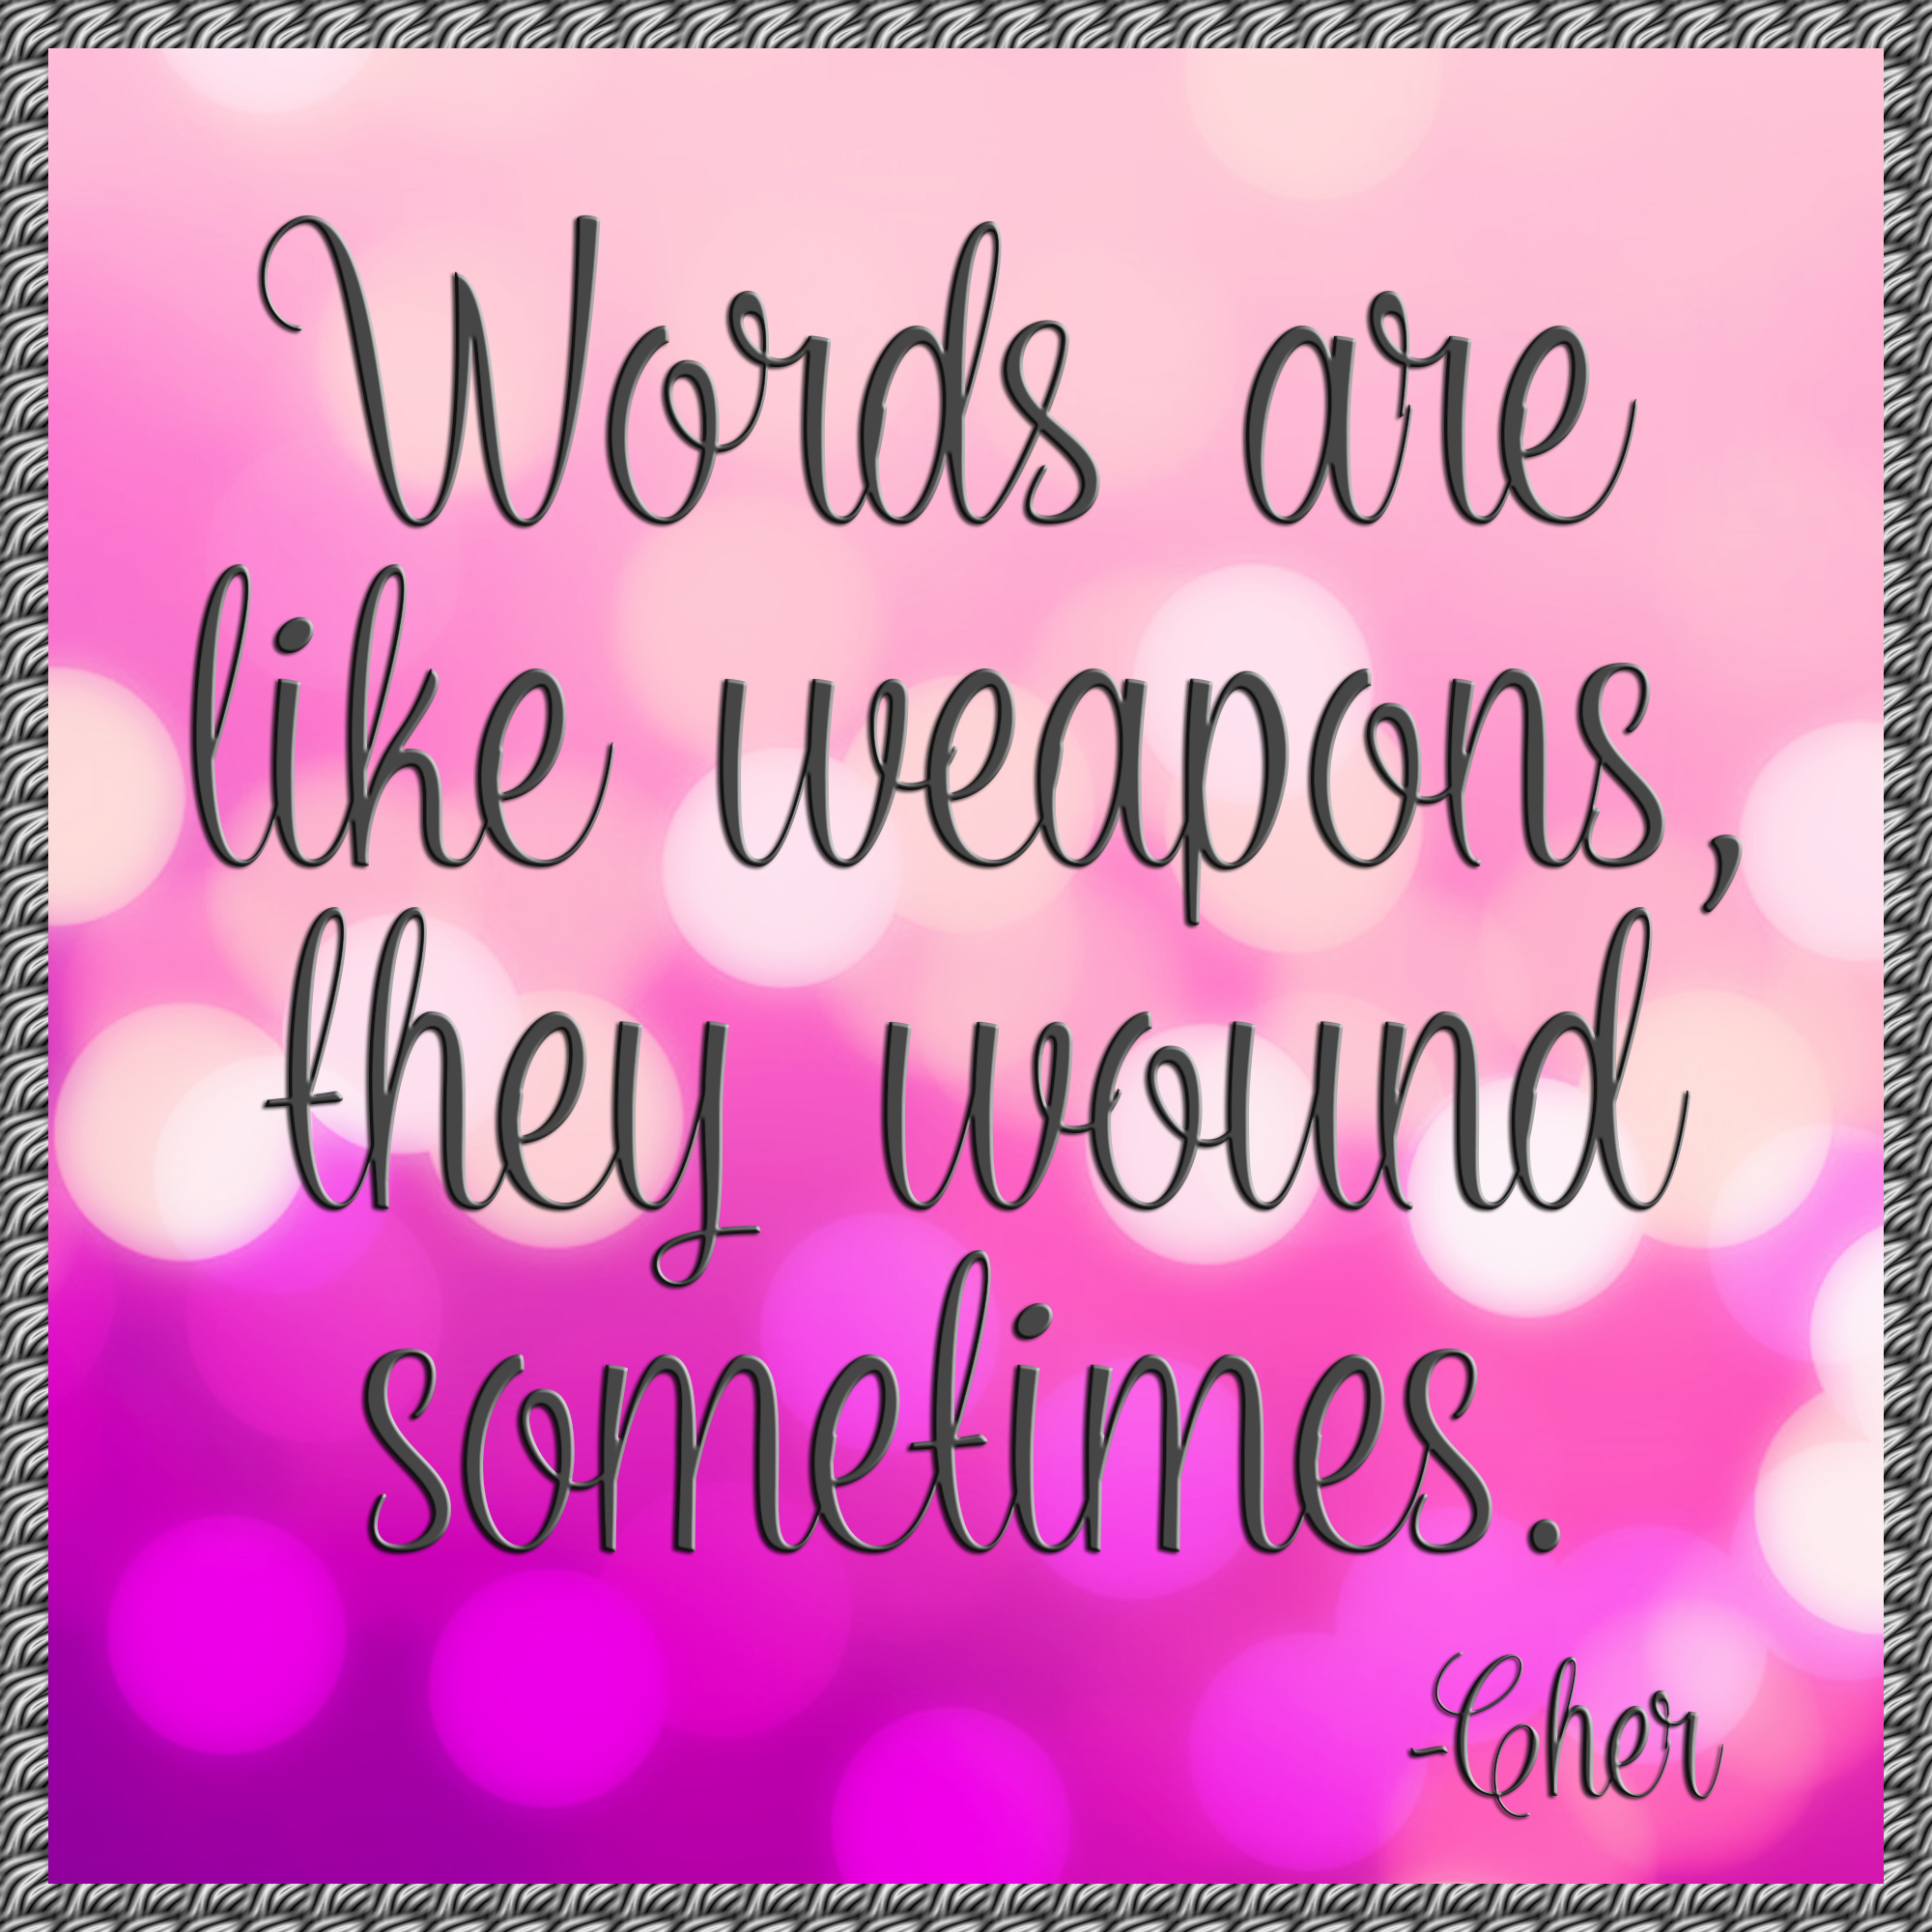 Words are like weapons they sometimes wound - quote - 021015